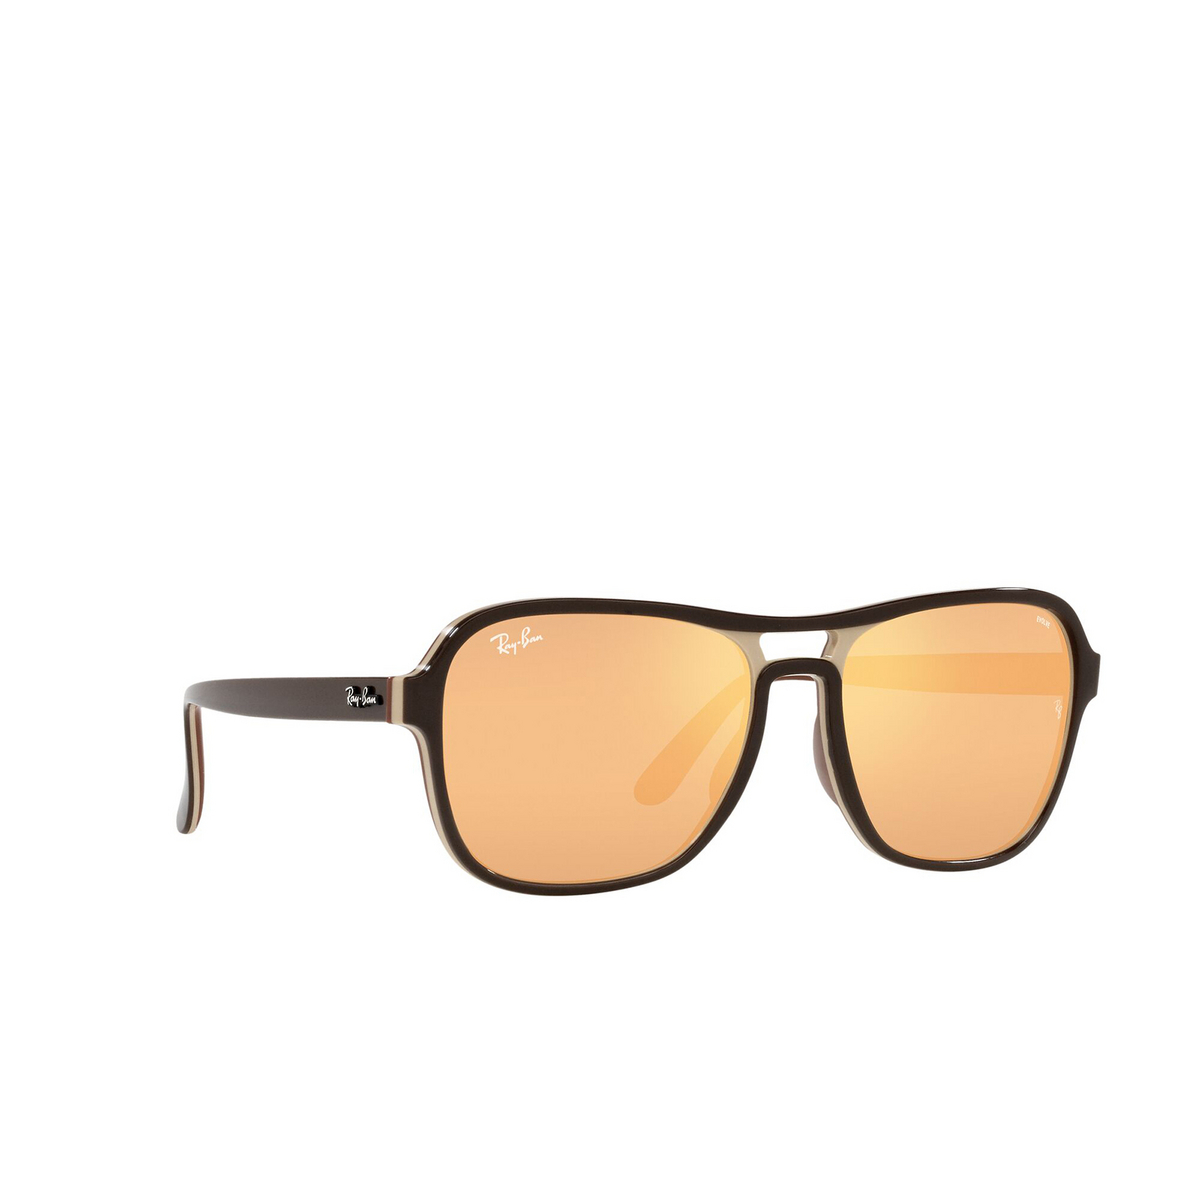 Ray-Ban® Square Sunglasses: State Side RB4356 color Dark Brown Light Brown 6547B4 - three-quarters view.